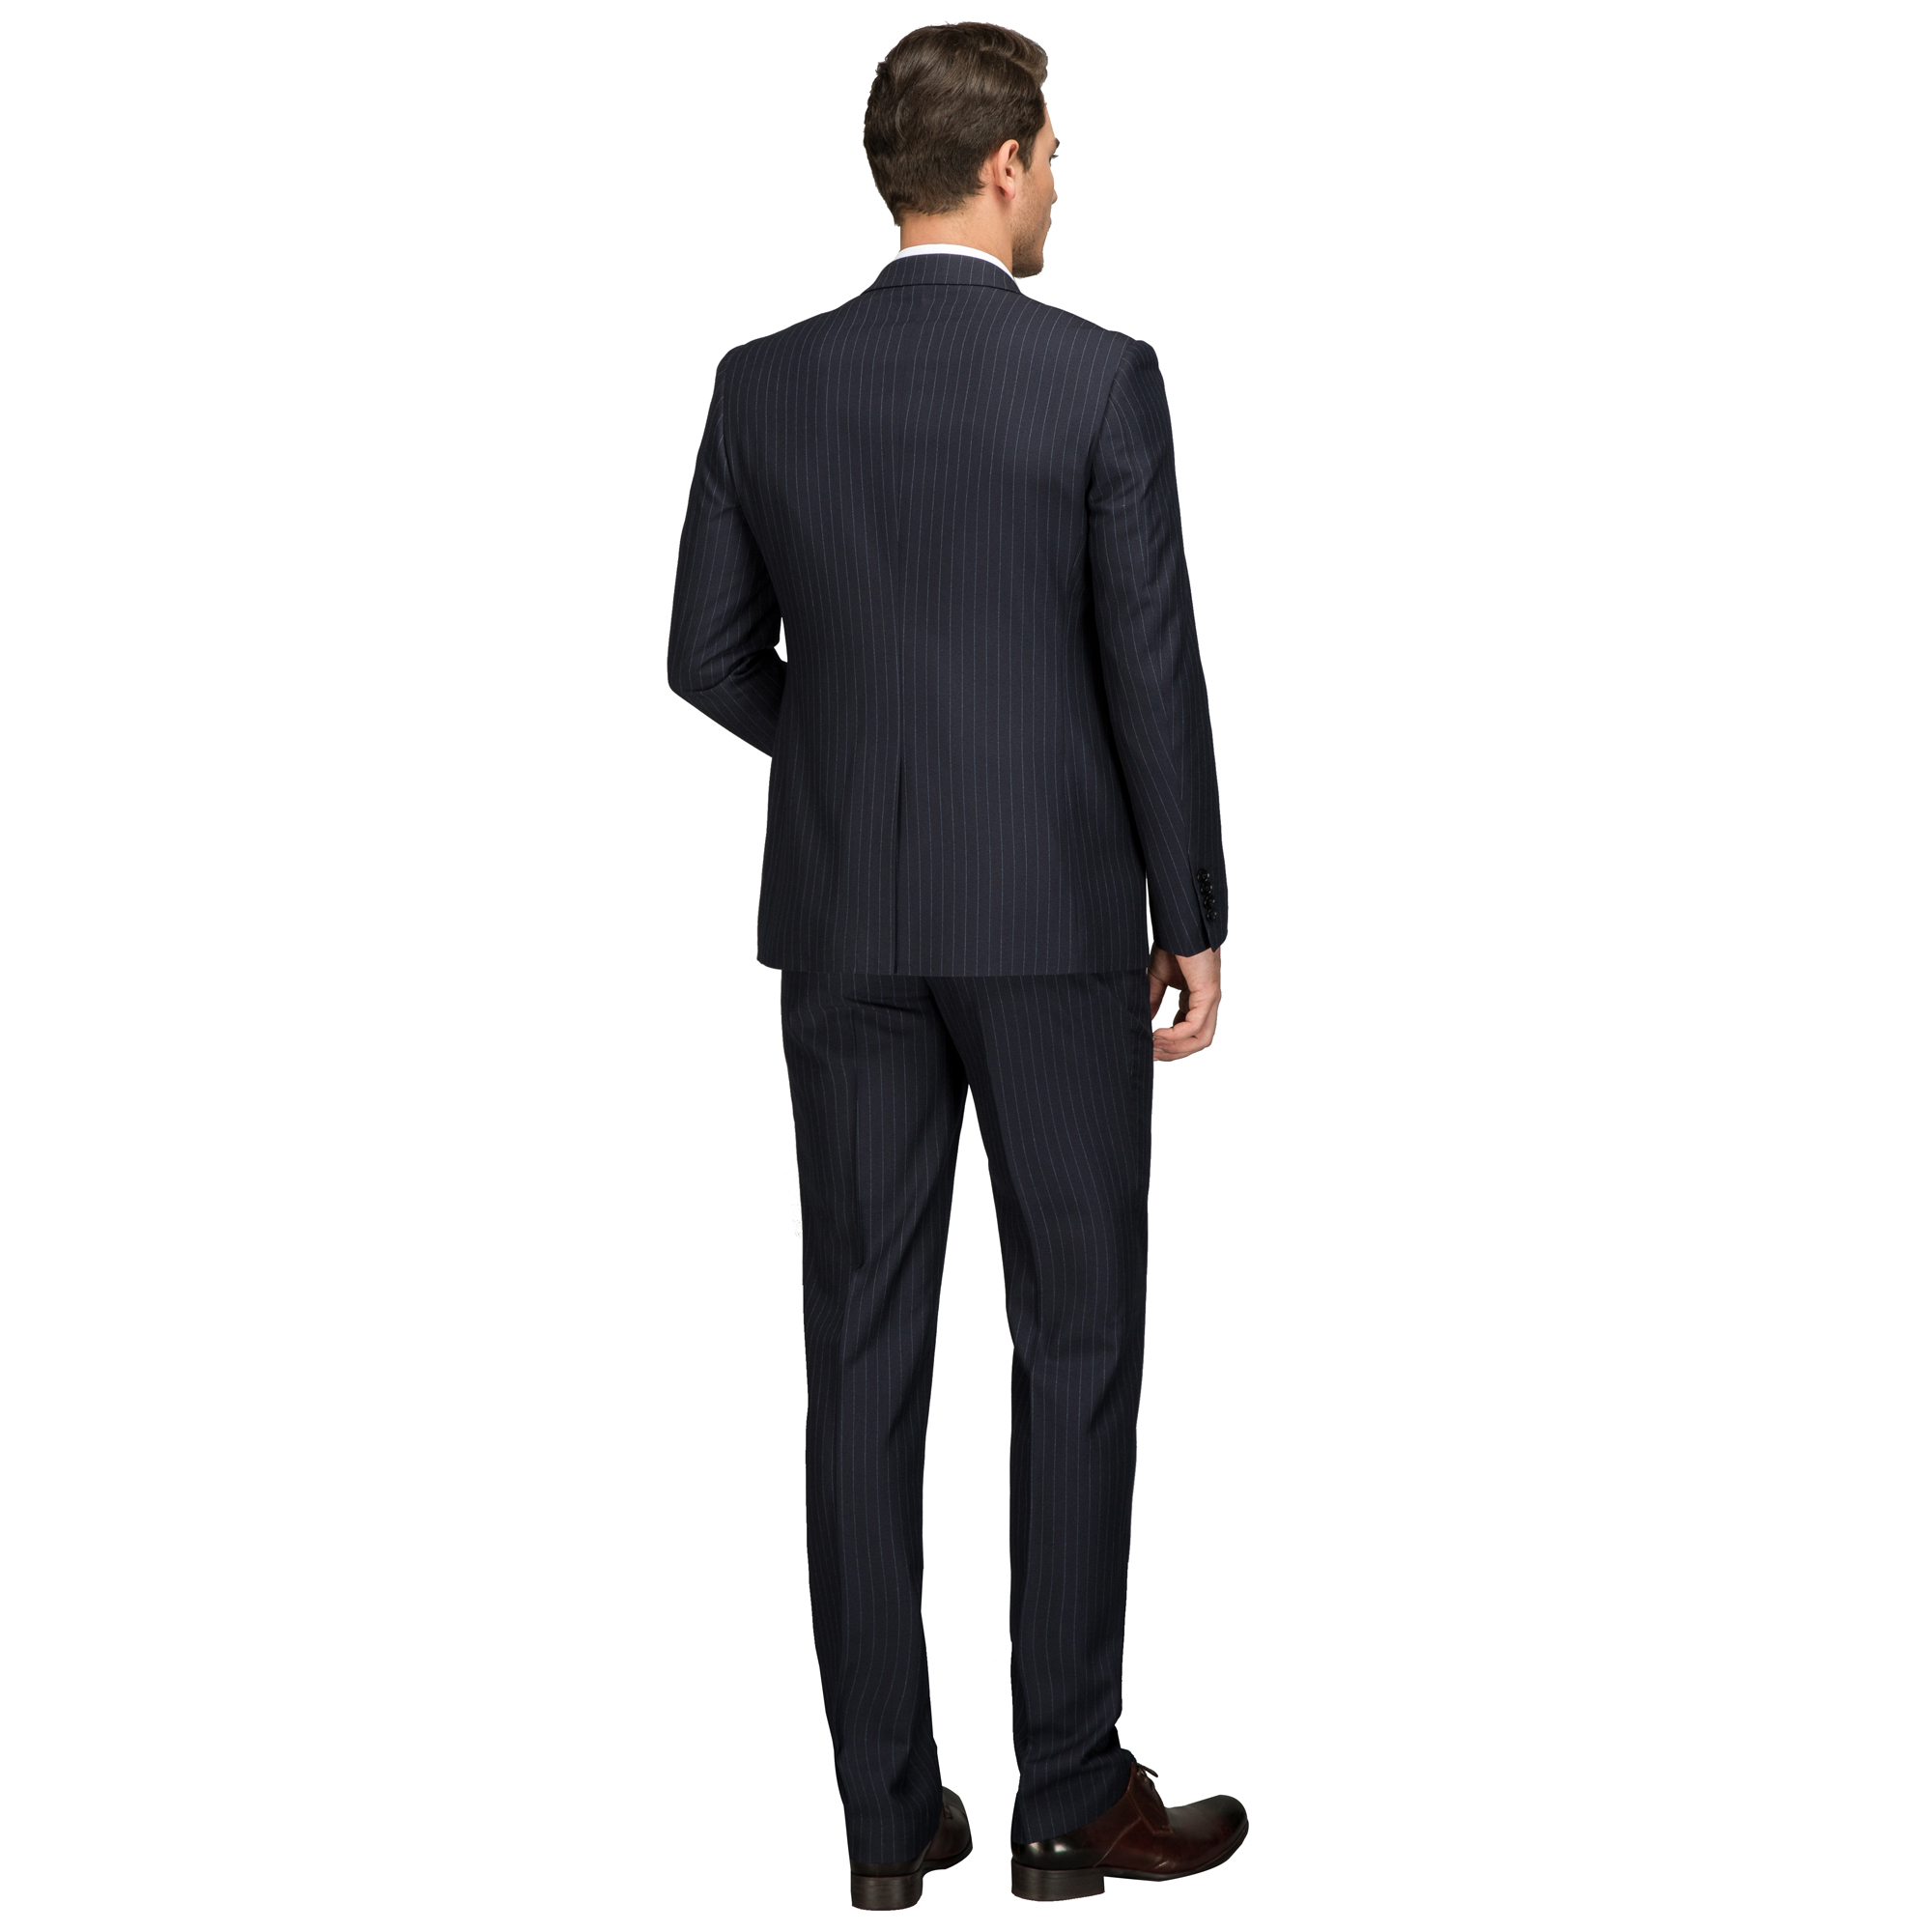 7ada6d5bd89 OSCN7 Wool Striped Customize Suit Men Plus Size Casual Business Wedding Mens  Suits Fashion Terno Masculino 4624 11-in Tailor-made Suits from Men s  Clothing ...